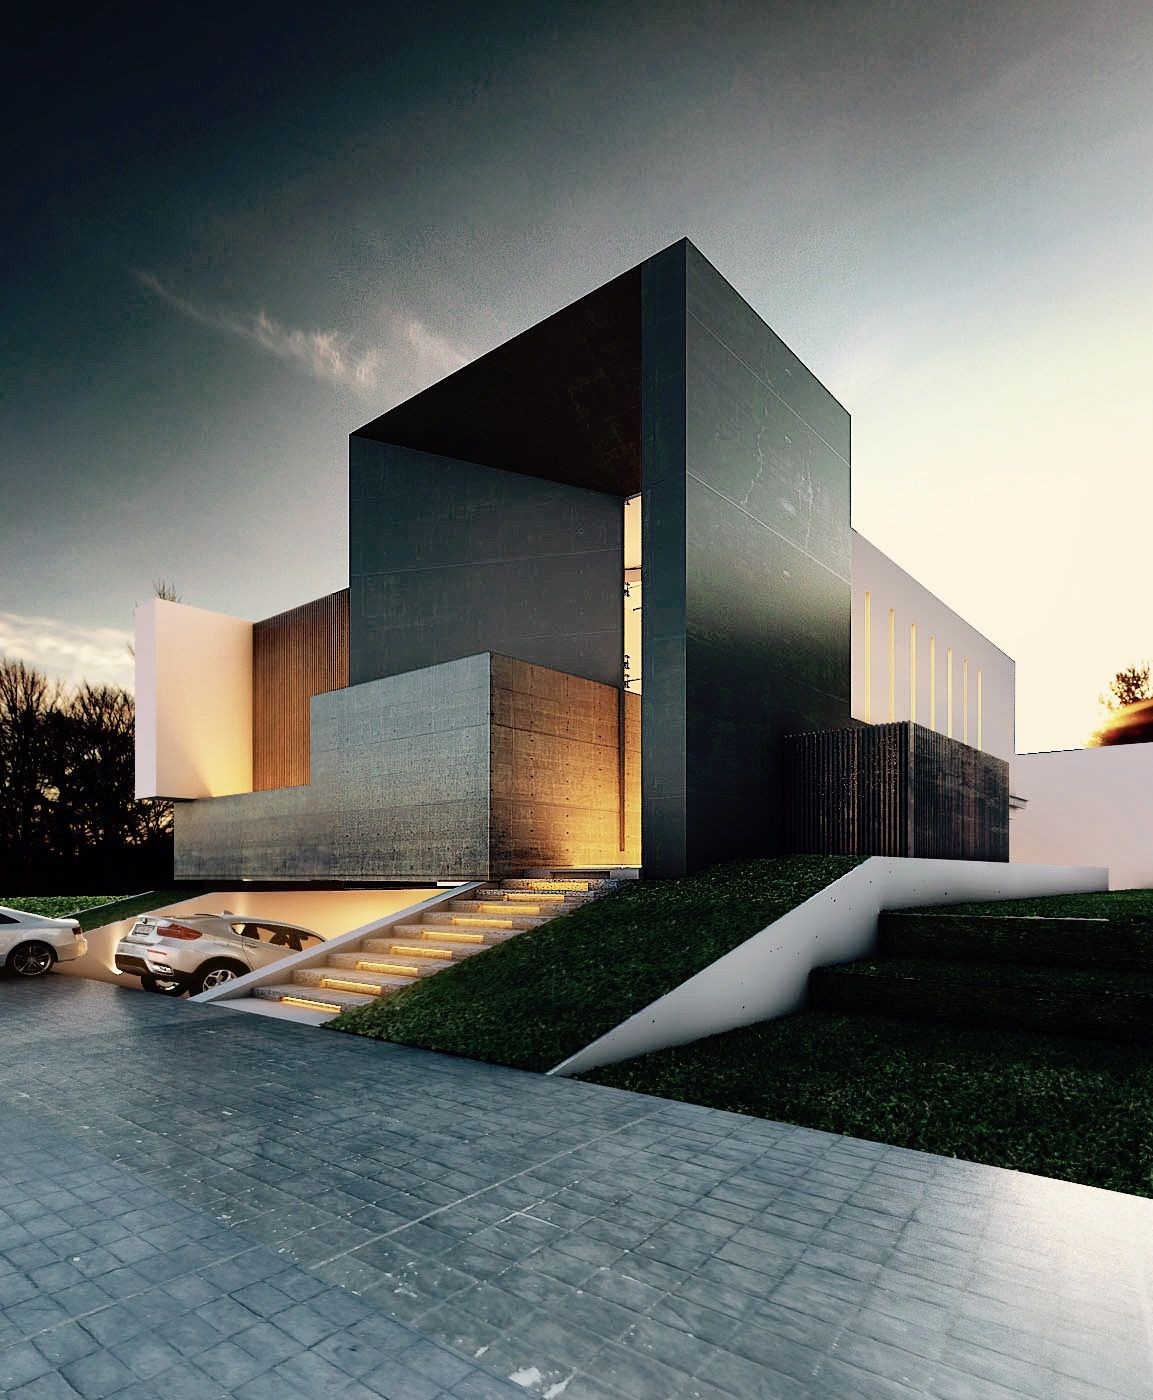 Architecture house design modern architecture design black architecture english architecture beautiful architecture